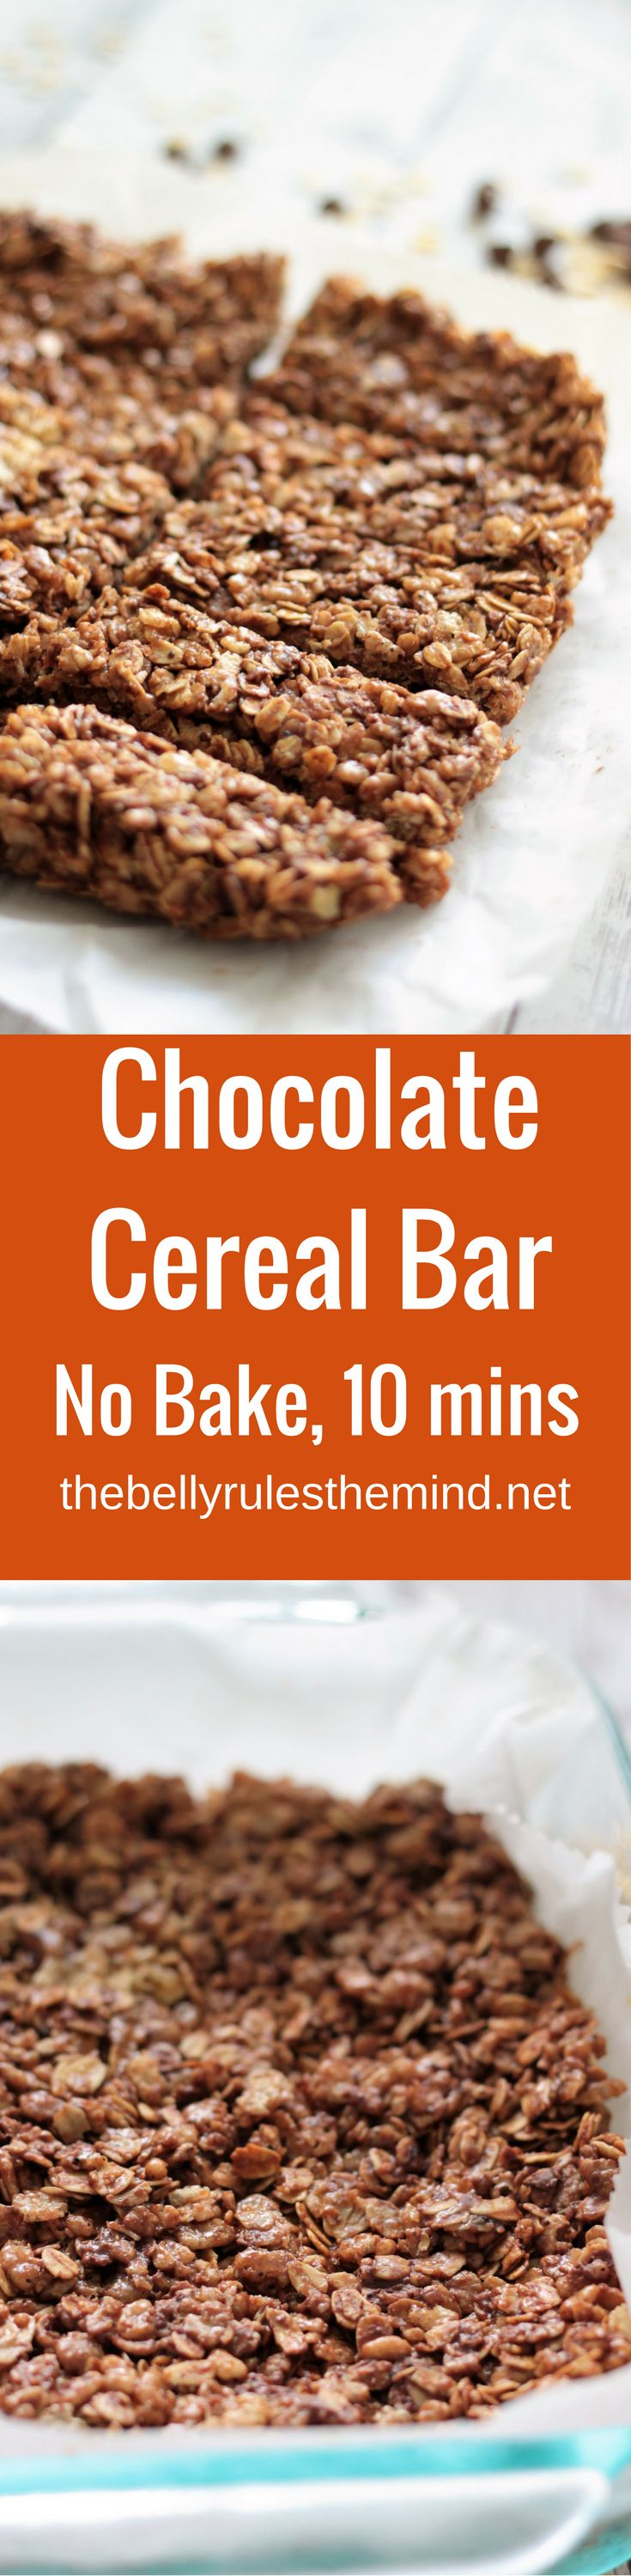 Homemade cereal bars that are quick (no-bake), easy and nutritious. Ready in just 10 minutes, they make a great go-to snack option too. Once you are hooked onto these, you will stop buying cereal bars from the store |www.thebellyrulesthemind.net @bellyrulesdmind